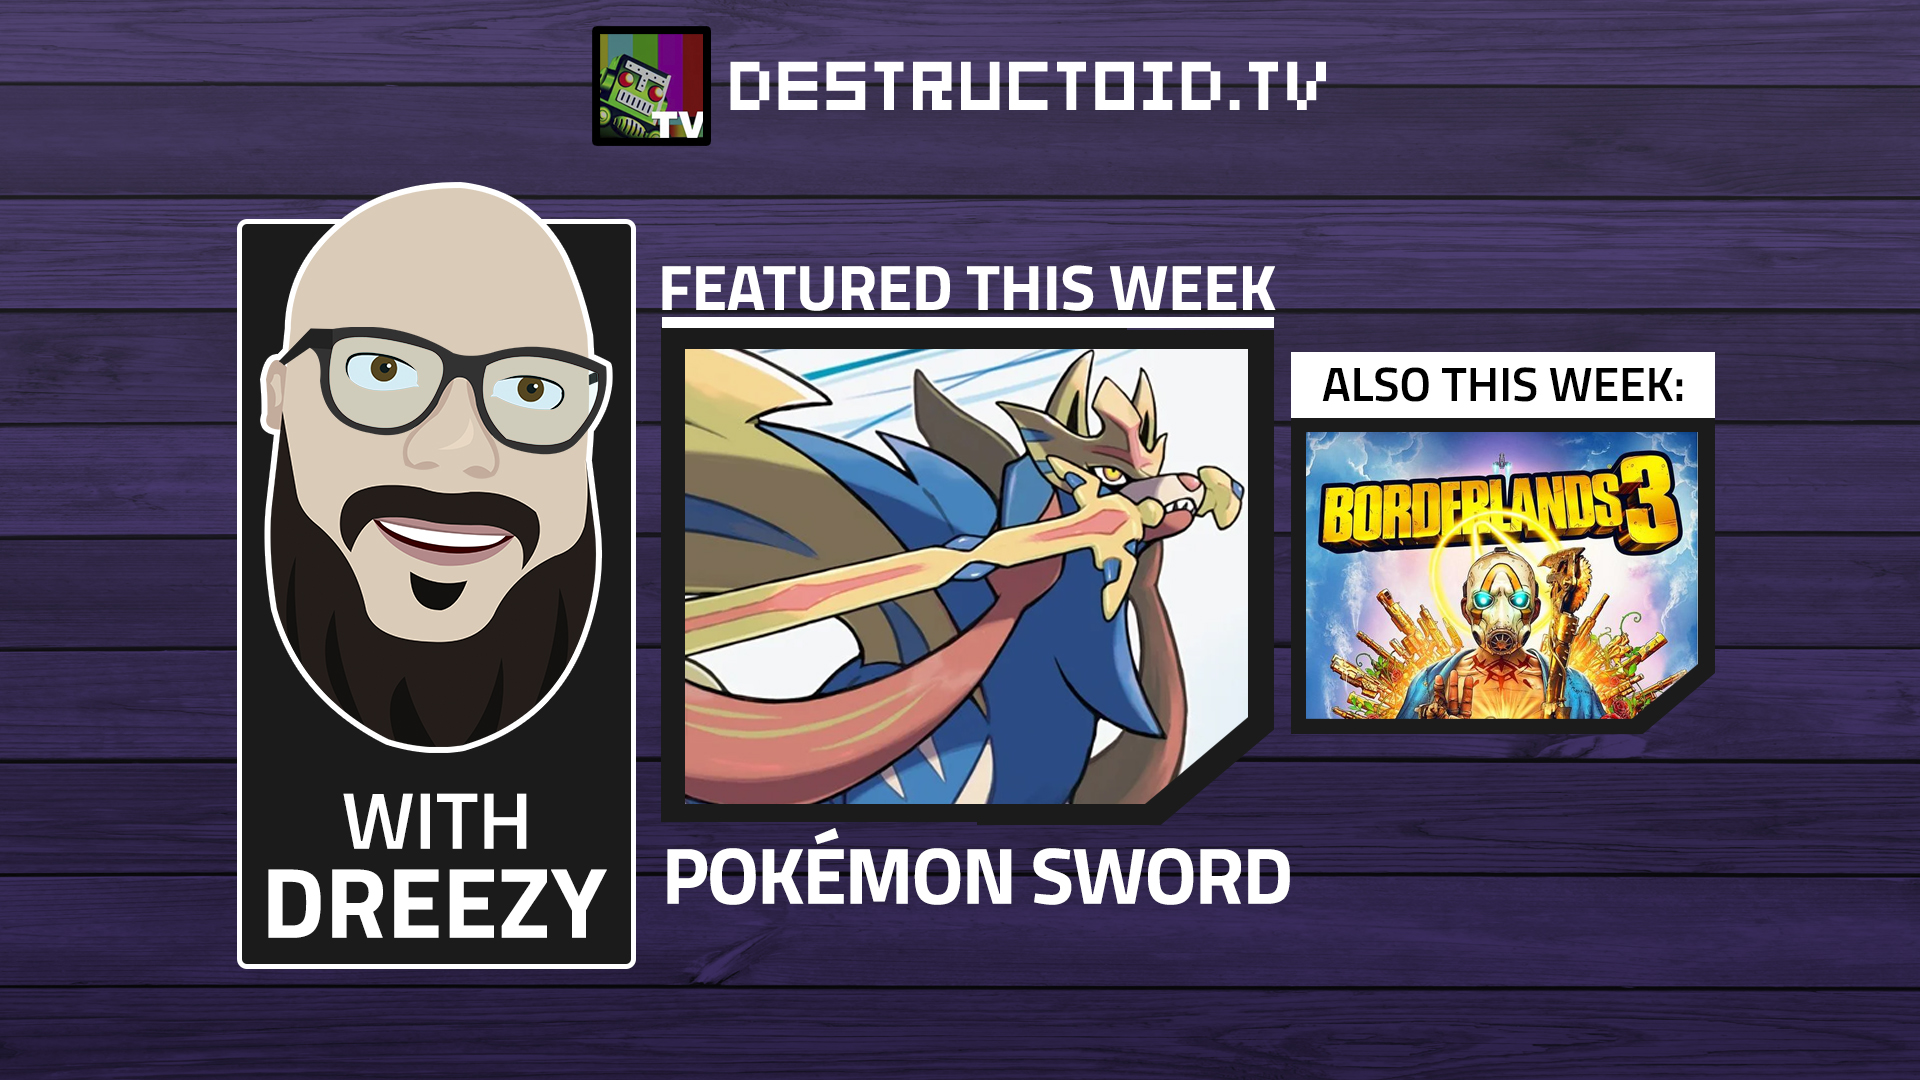 We're live on Twitch this week with even more Pokemon Sword! screenshot